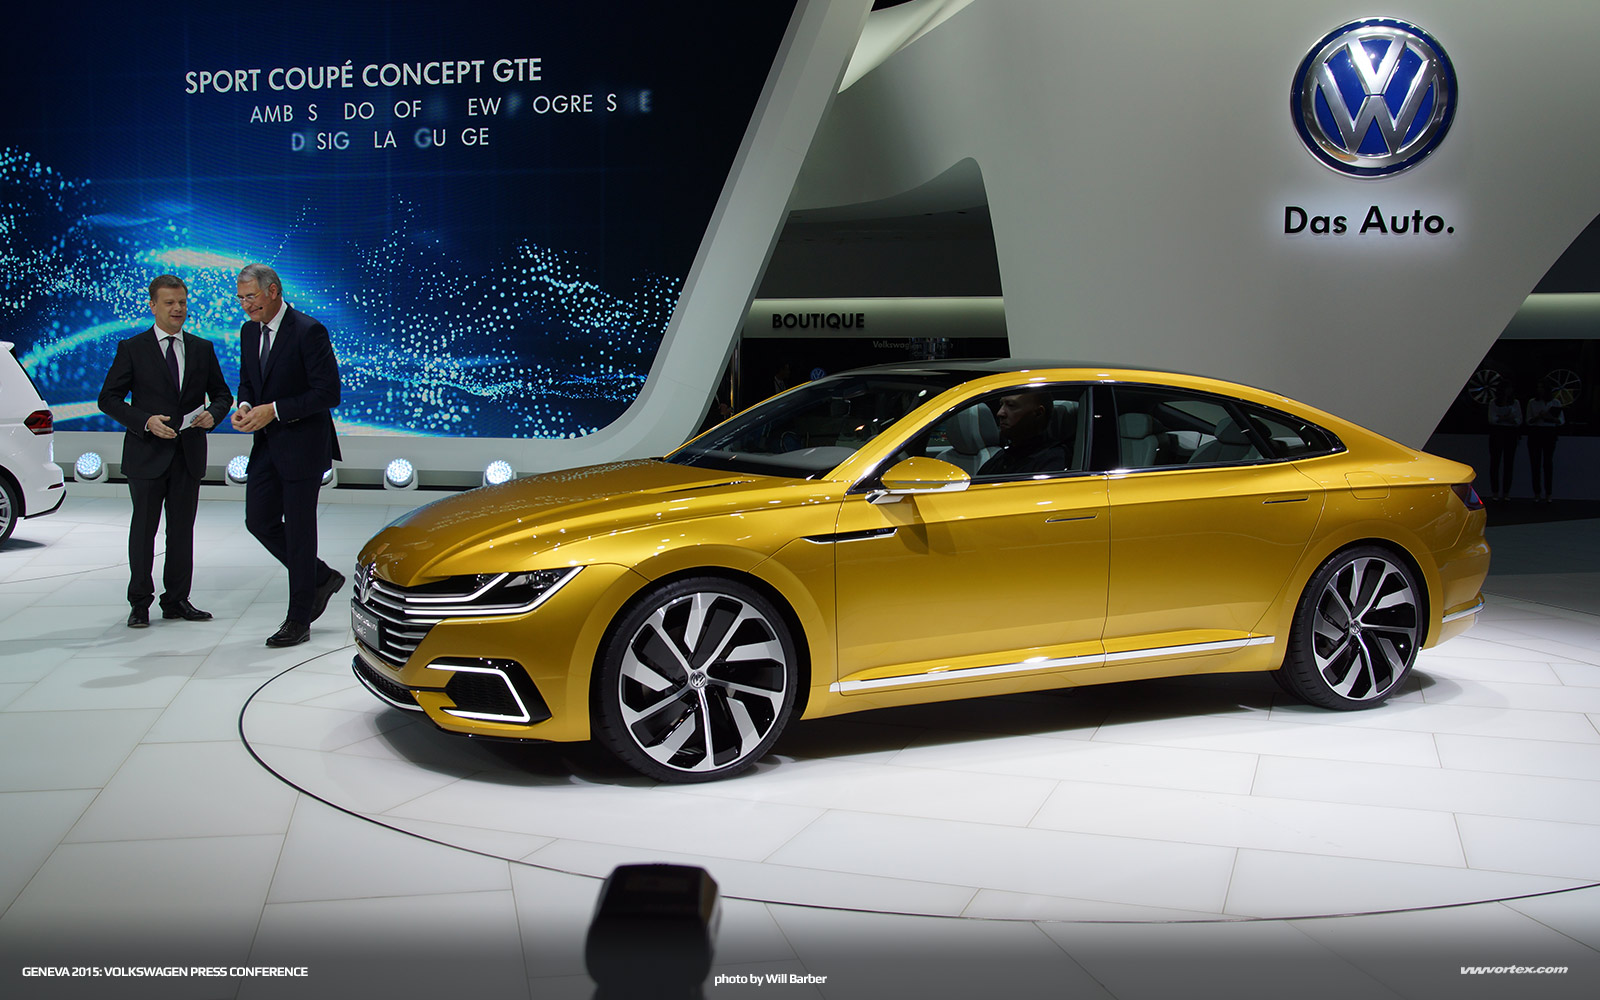 geneva-2015-volkswagen-press-conference-444